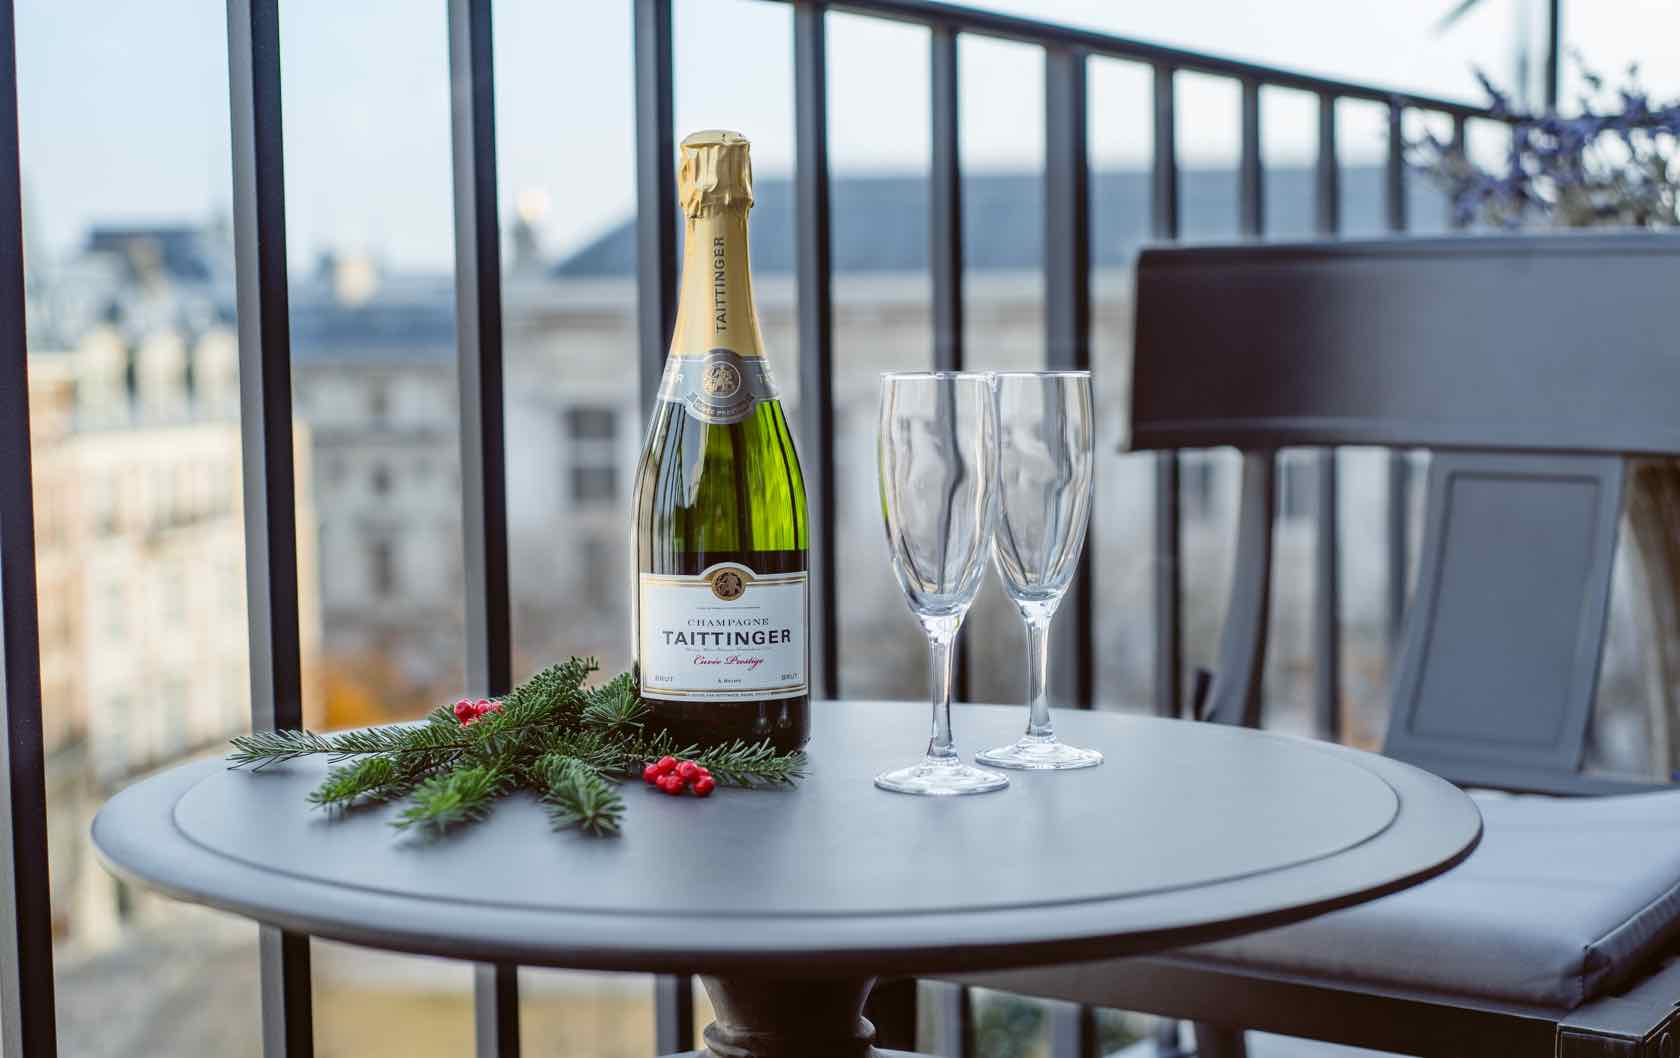 Francophile Gifts champagne at Place Dauphine